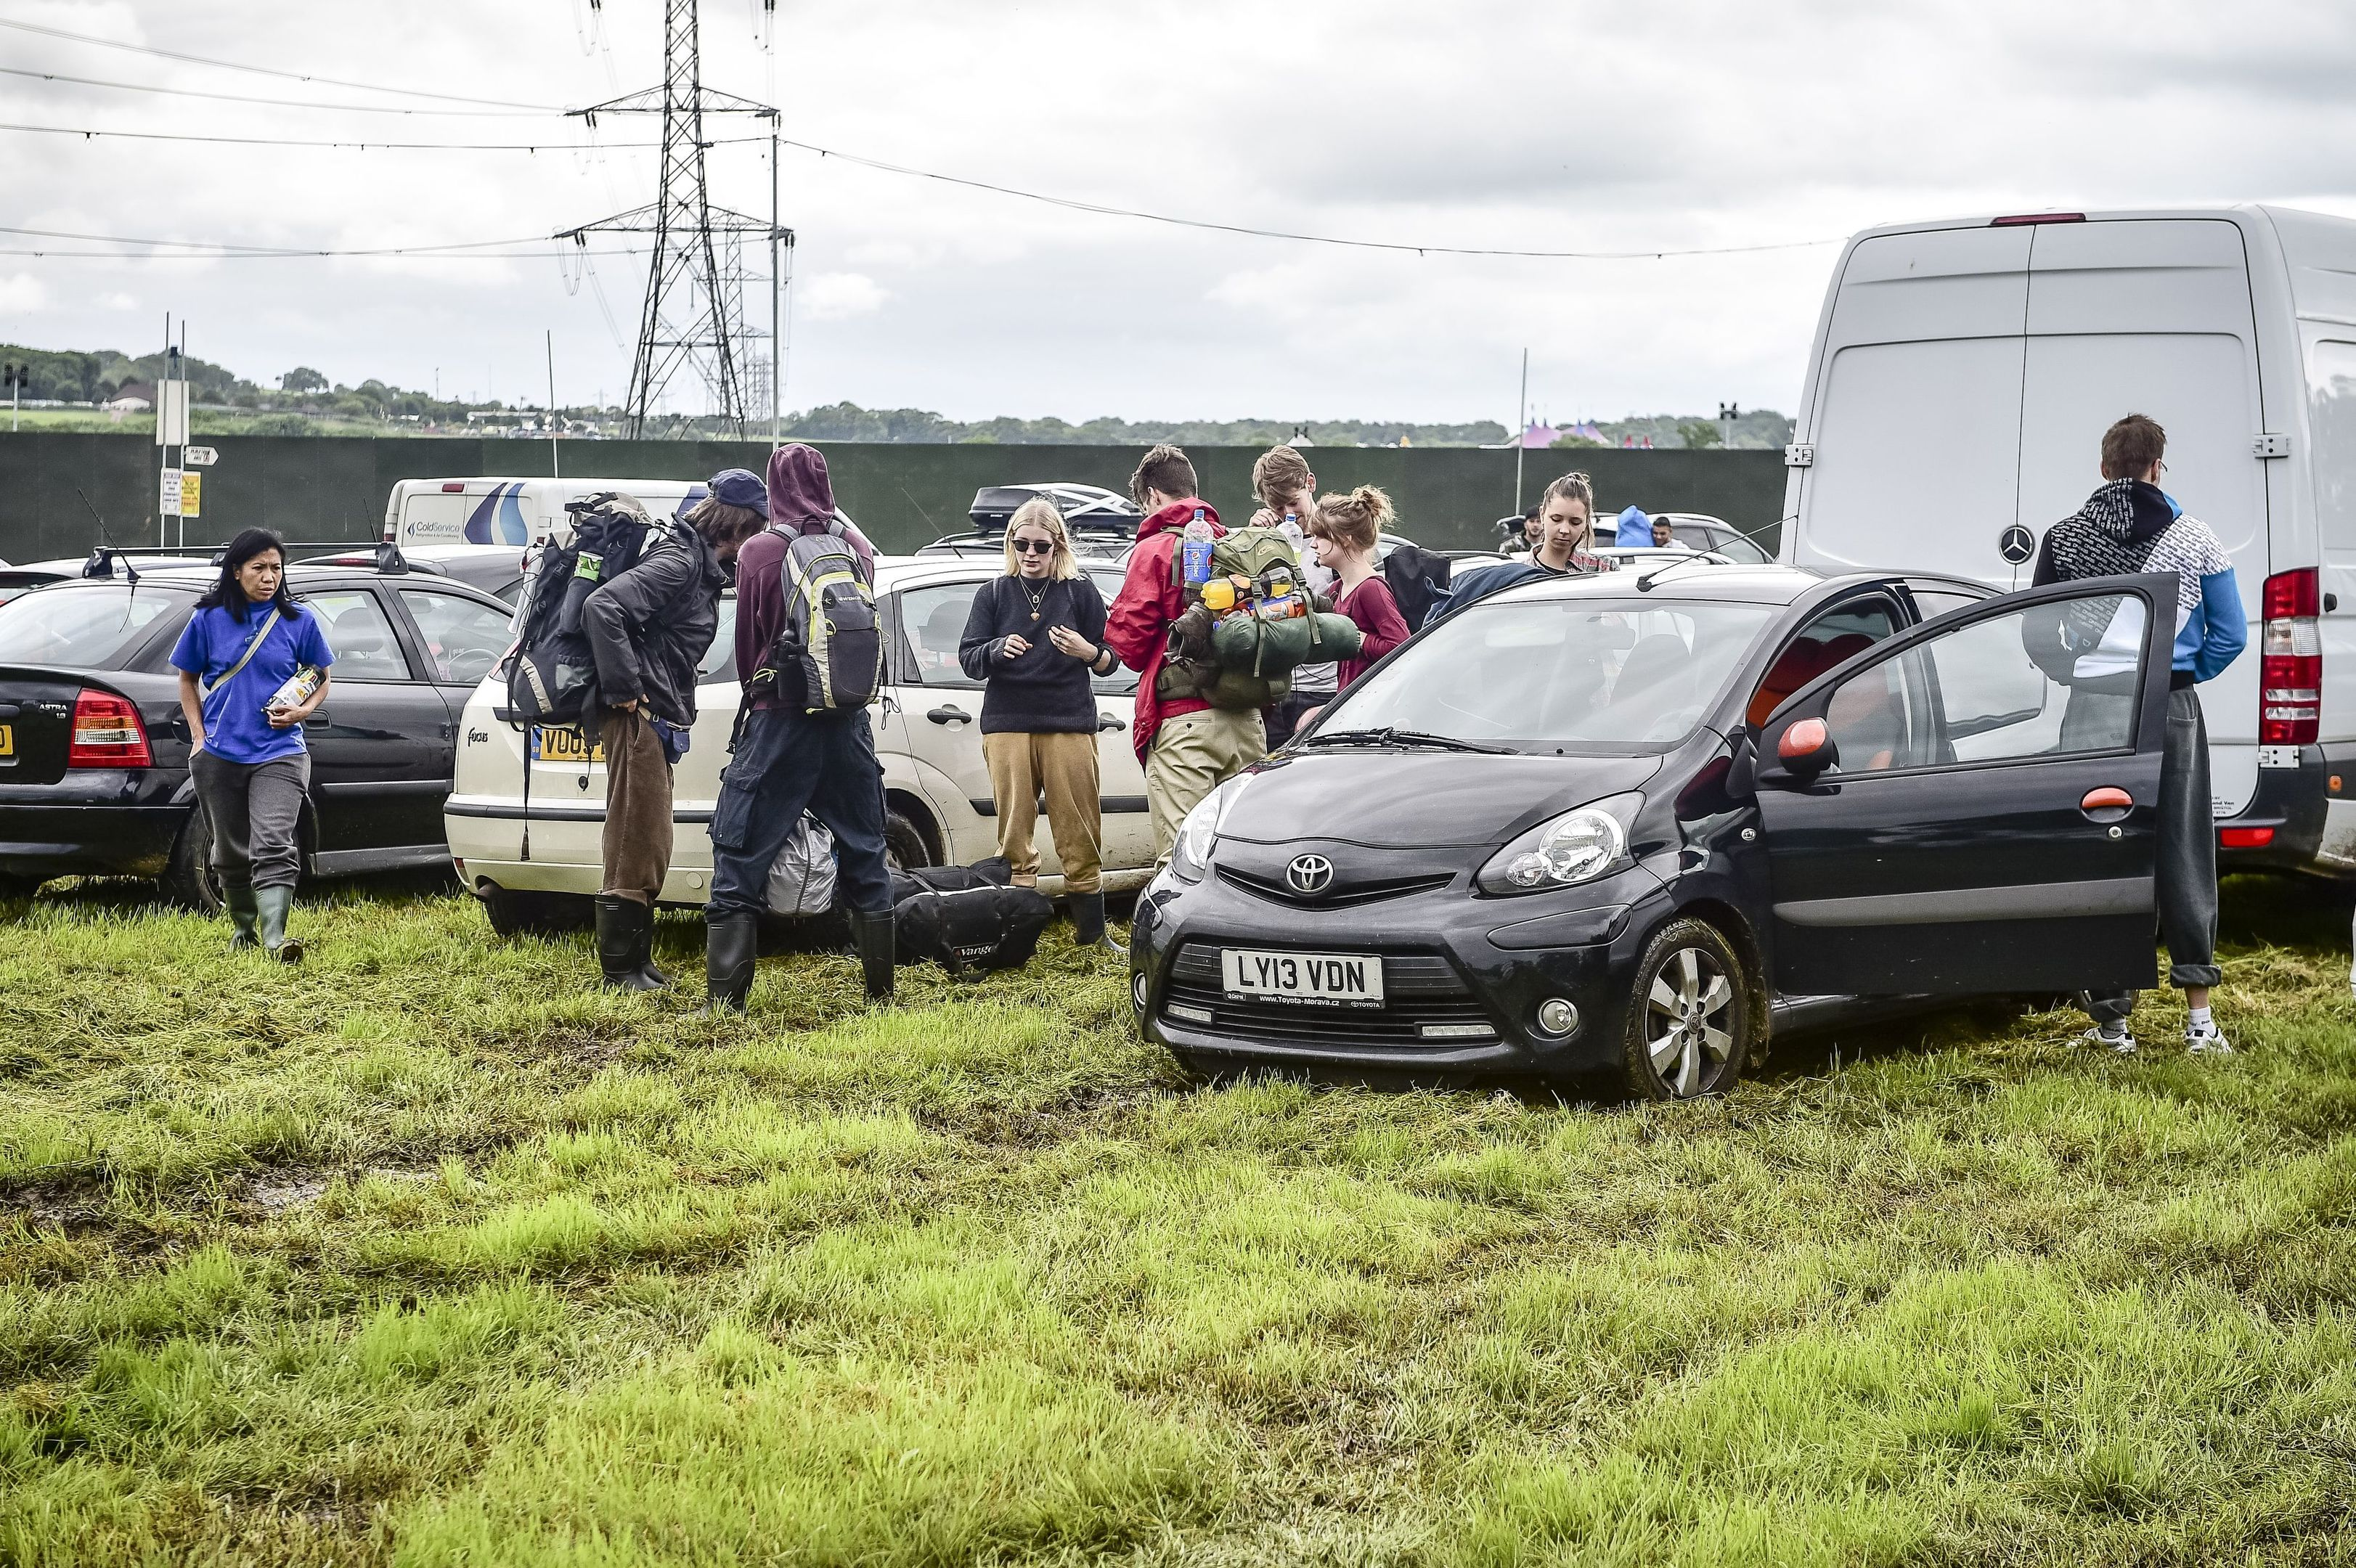 People arrive and park in muddy and waterlogged fields at Glastonbury festival.